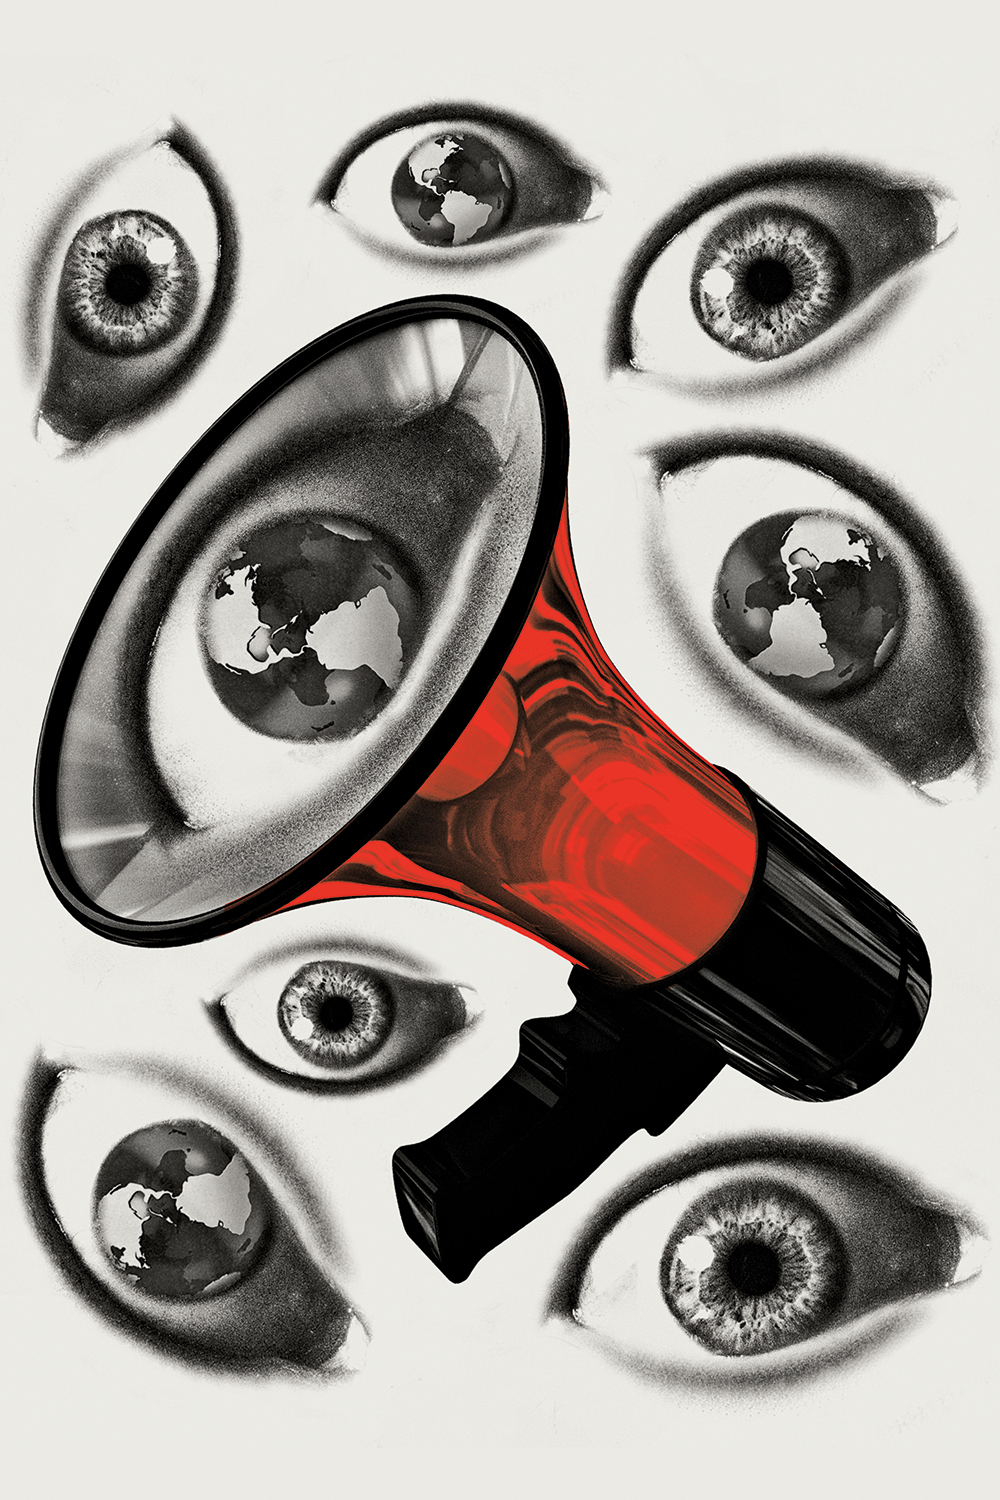 doomsday-worst-predictions-foreign-policy-joan-wong-illustration_SW_V1